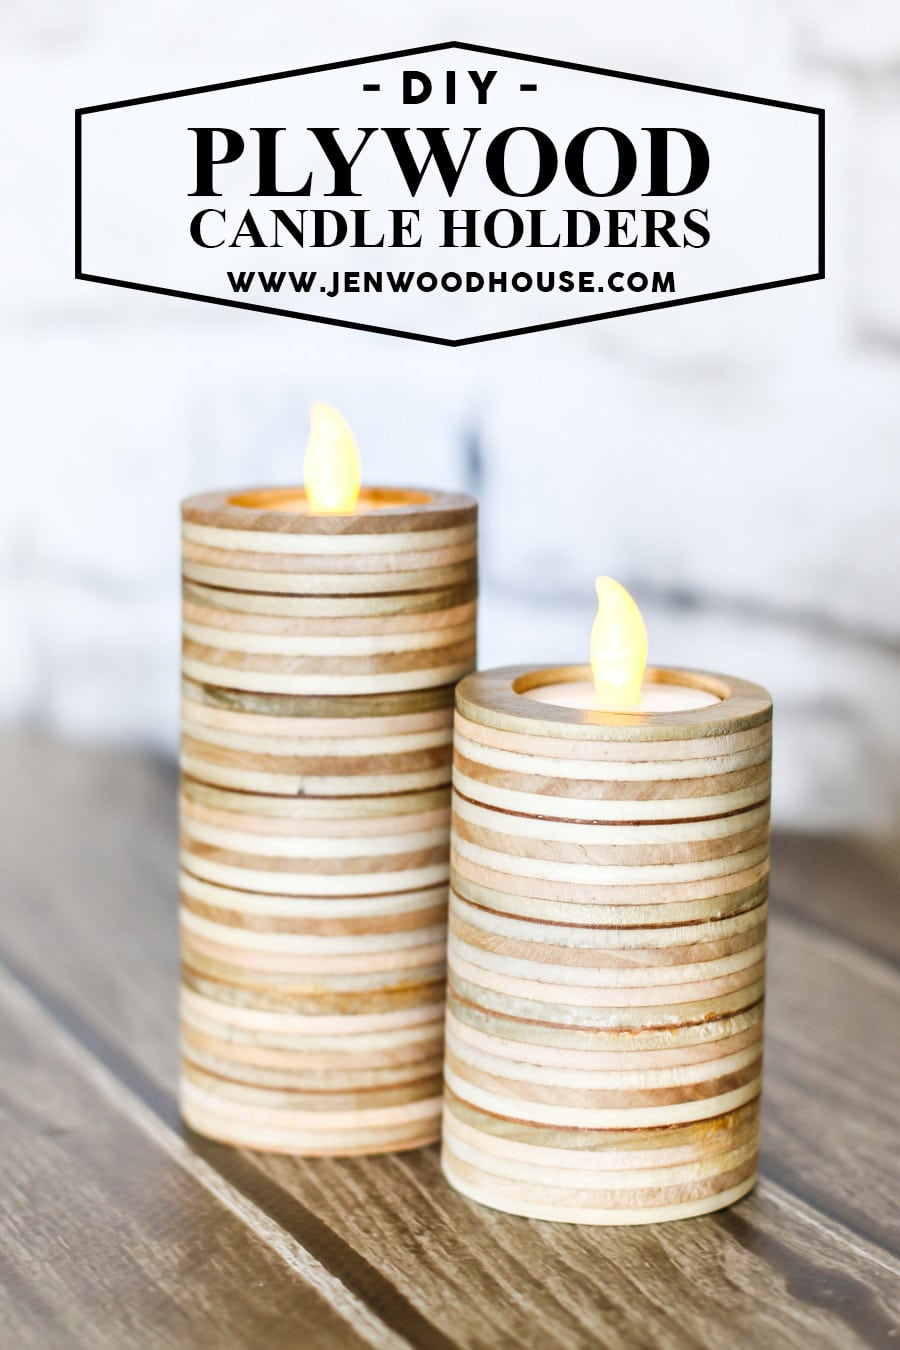 how to make diy tea light candle holders out of scrap plywood - Diy Candle Holders